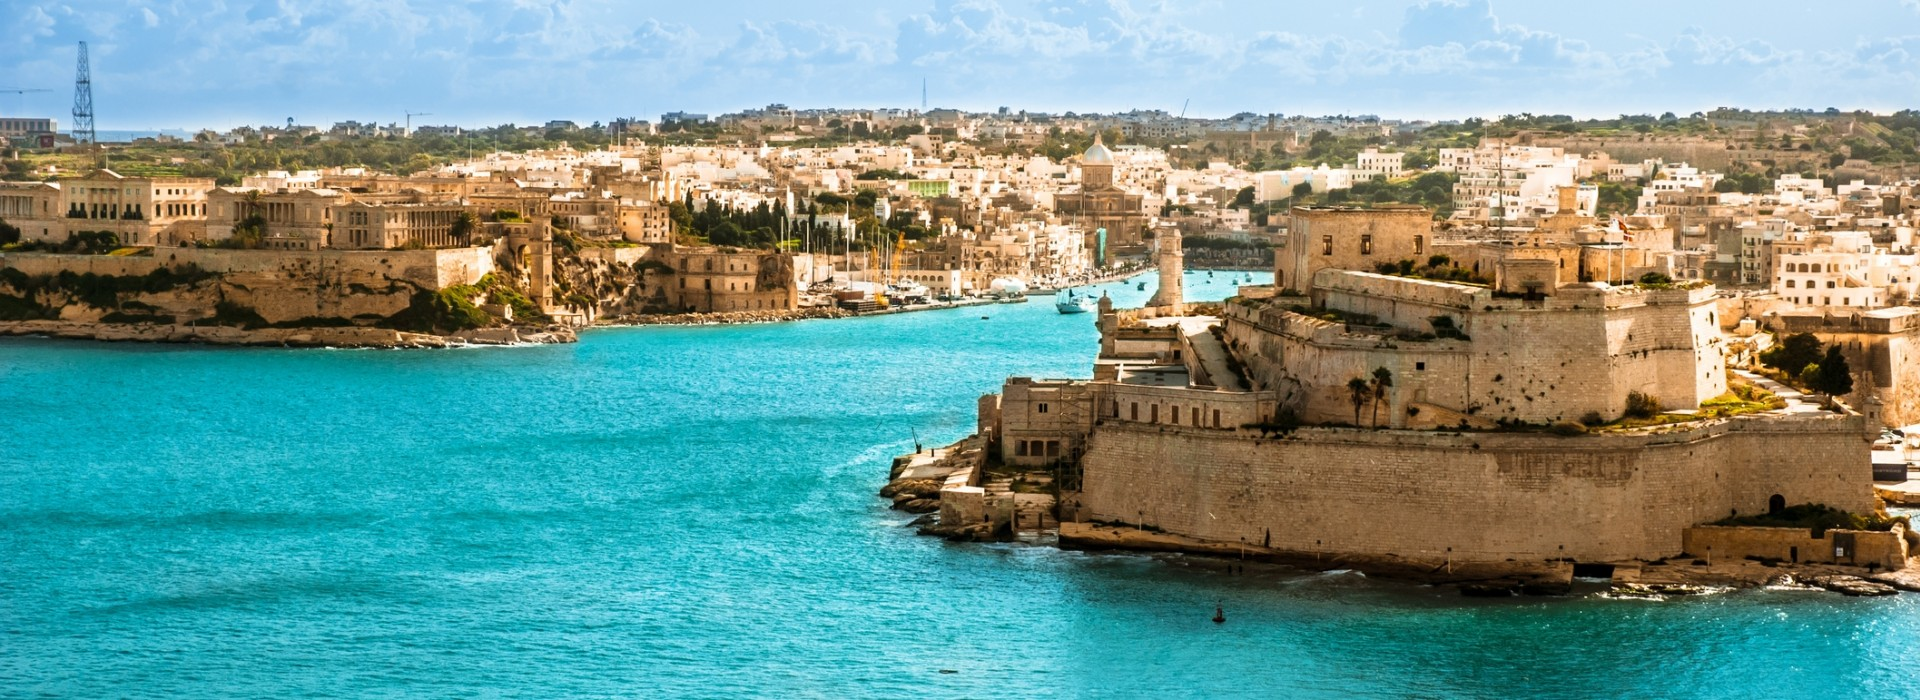 Travelling Malta - Tours and Trips in Malta